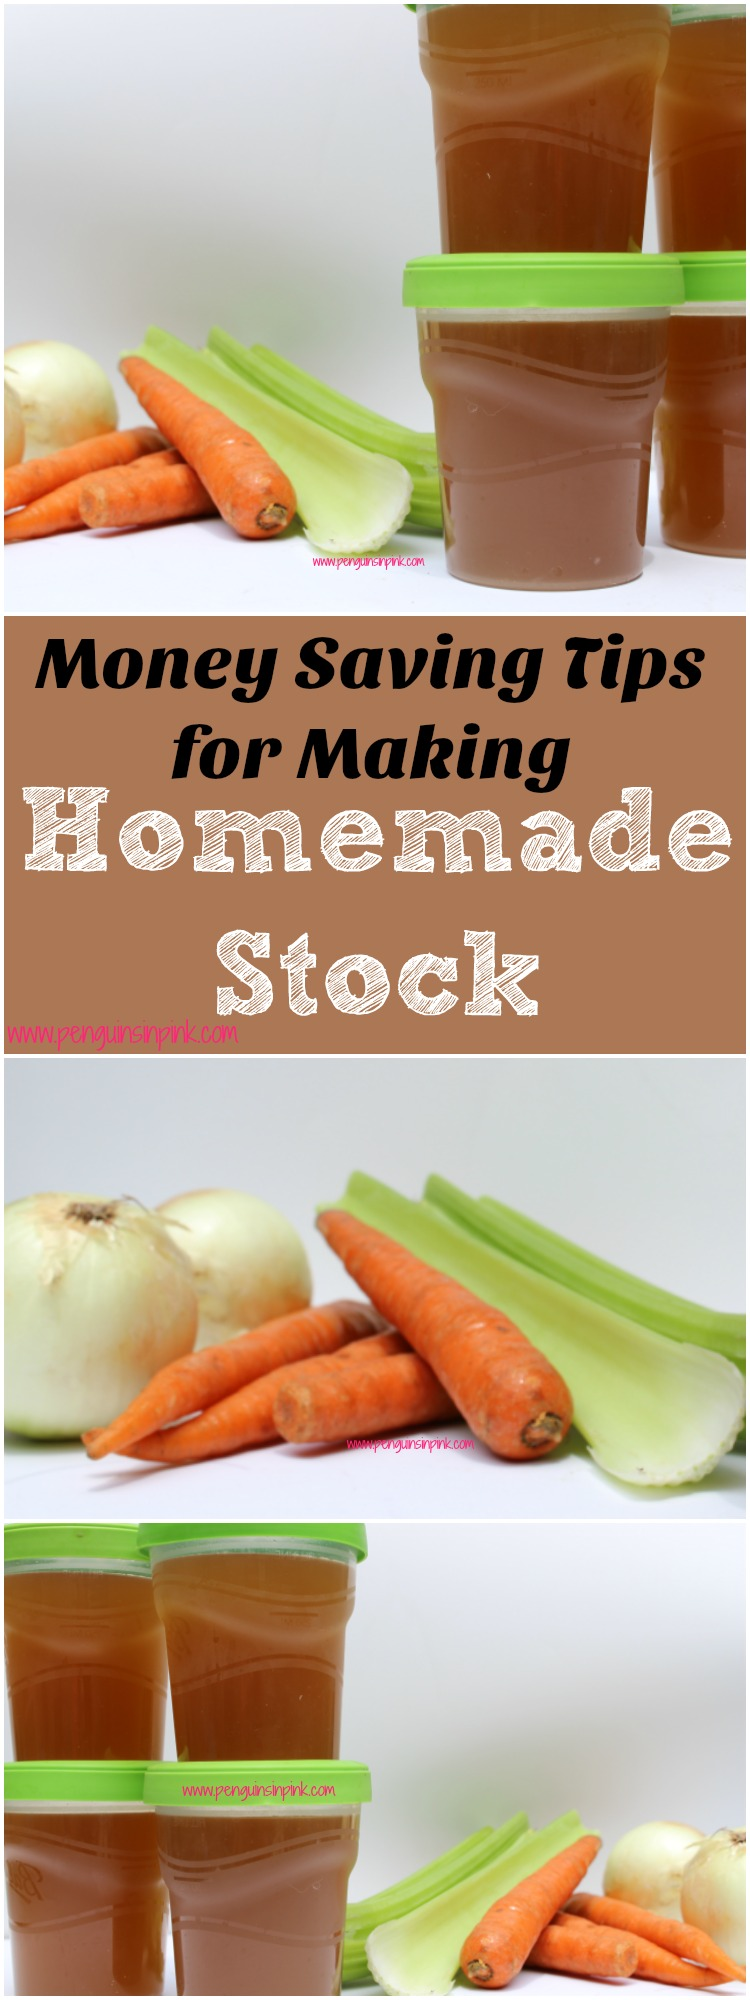 Money Saving Tips for Making Homemade Stock Making homemade stock saves you money, using these simple and easy tips will save you even more!